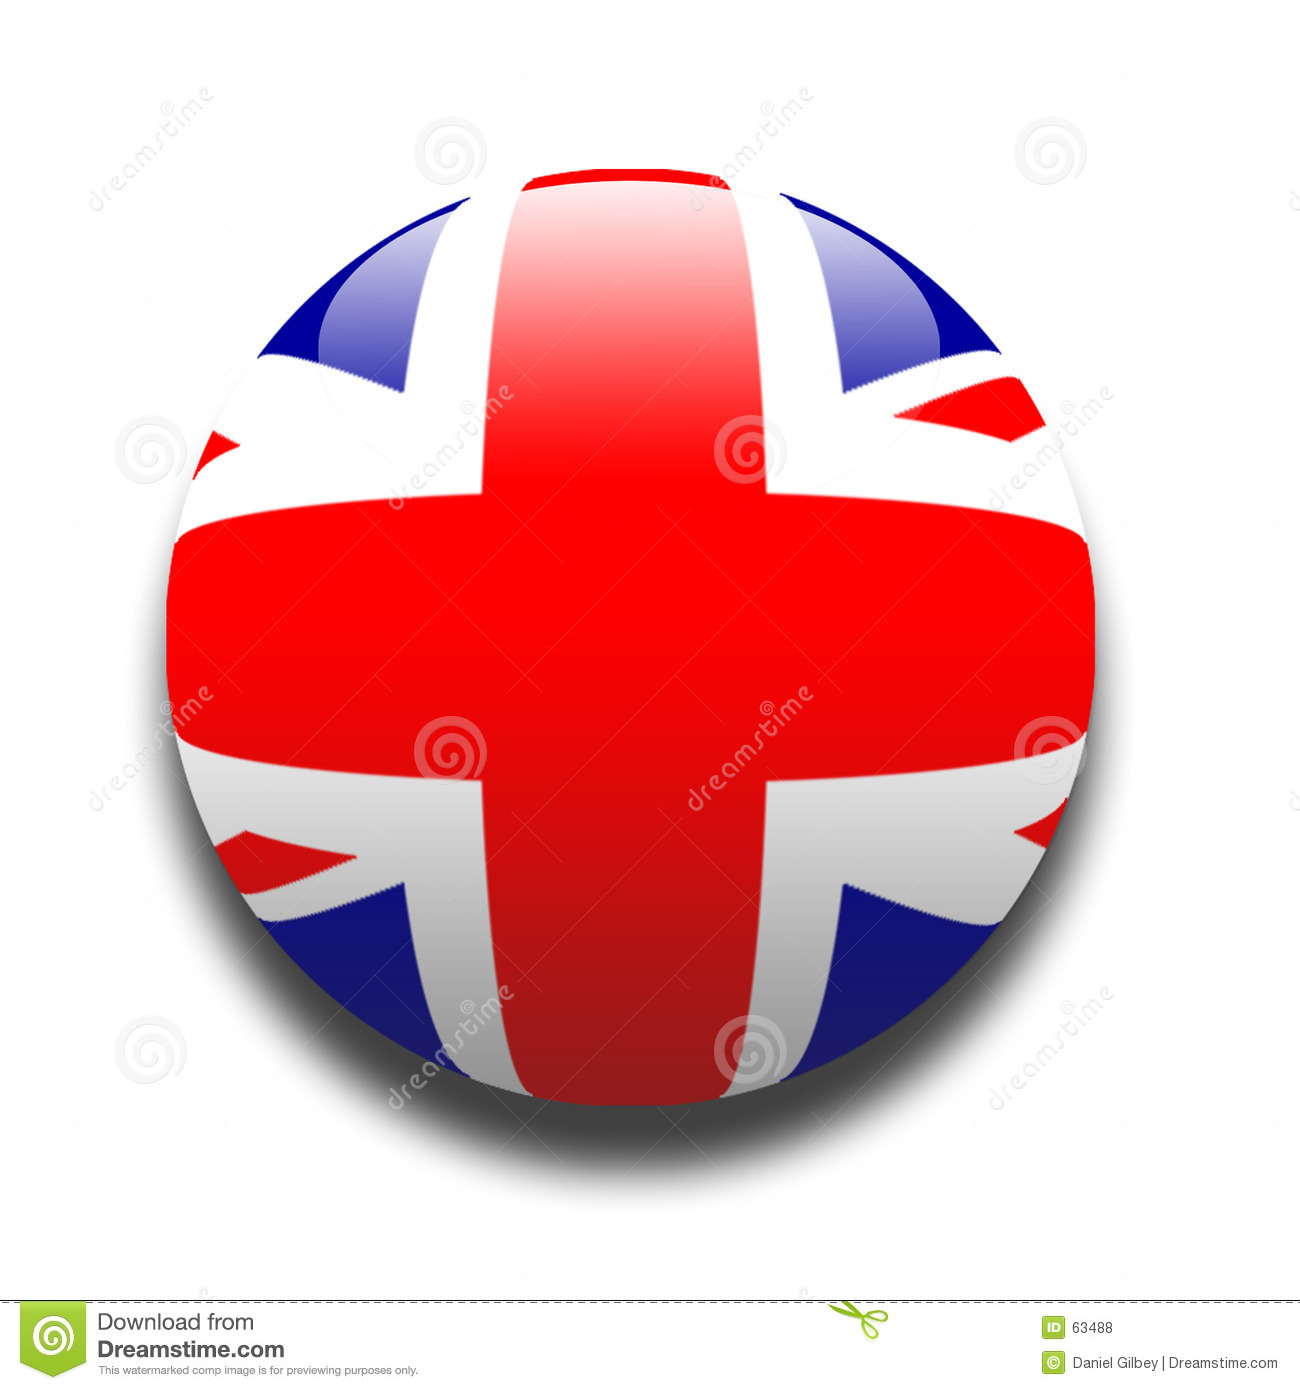 God save the queen! Union Jack - I have more flags in this style in my ...